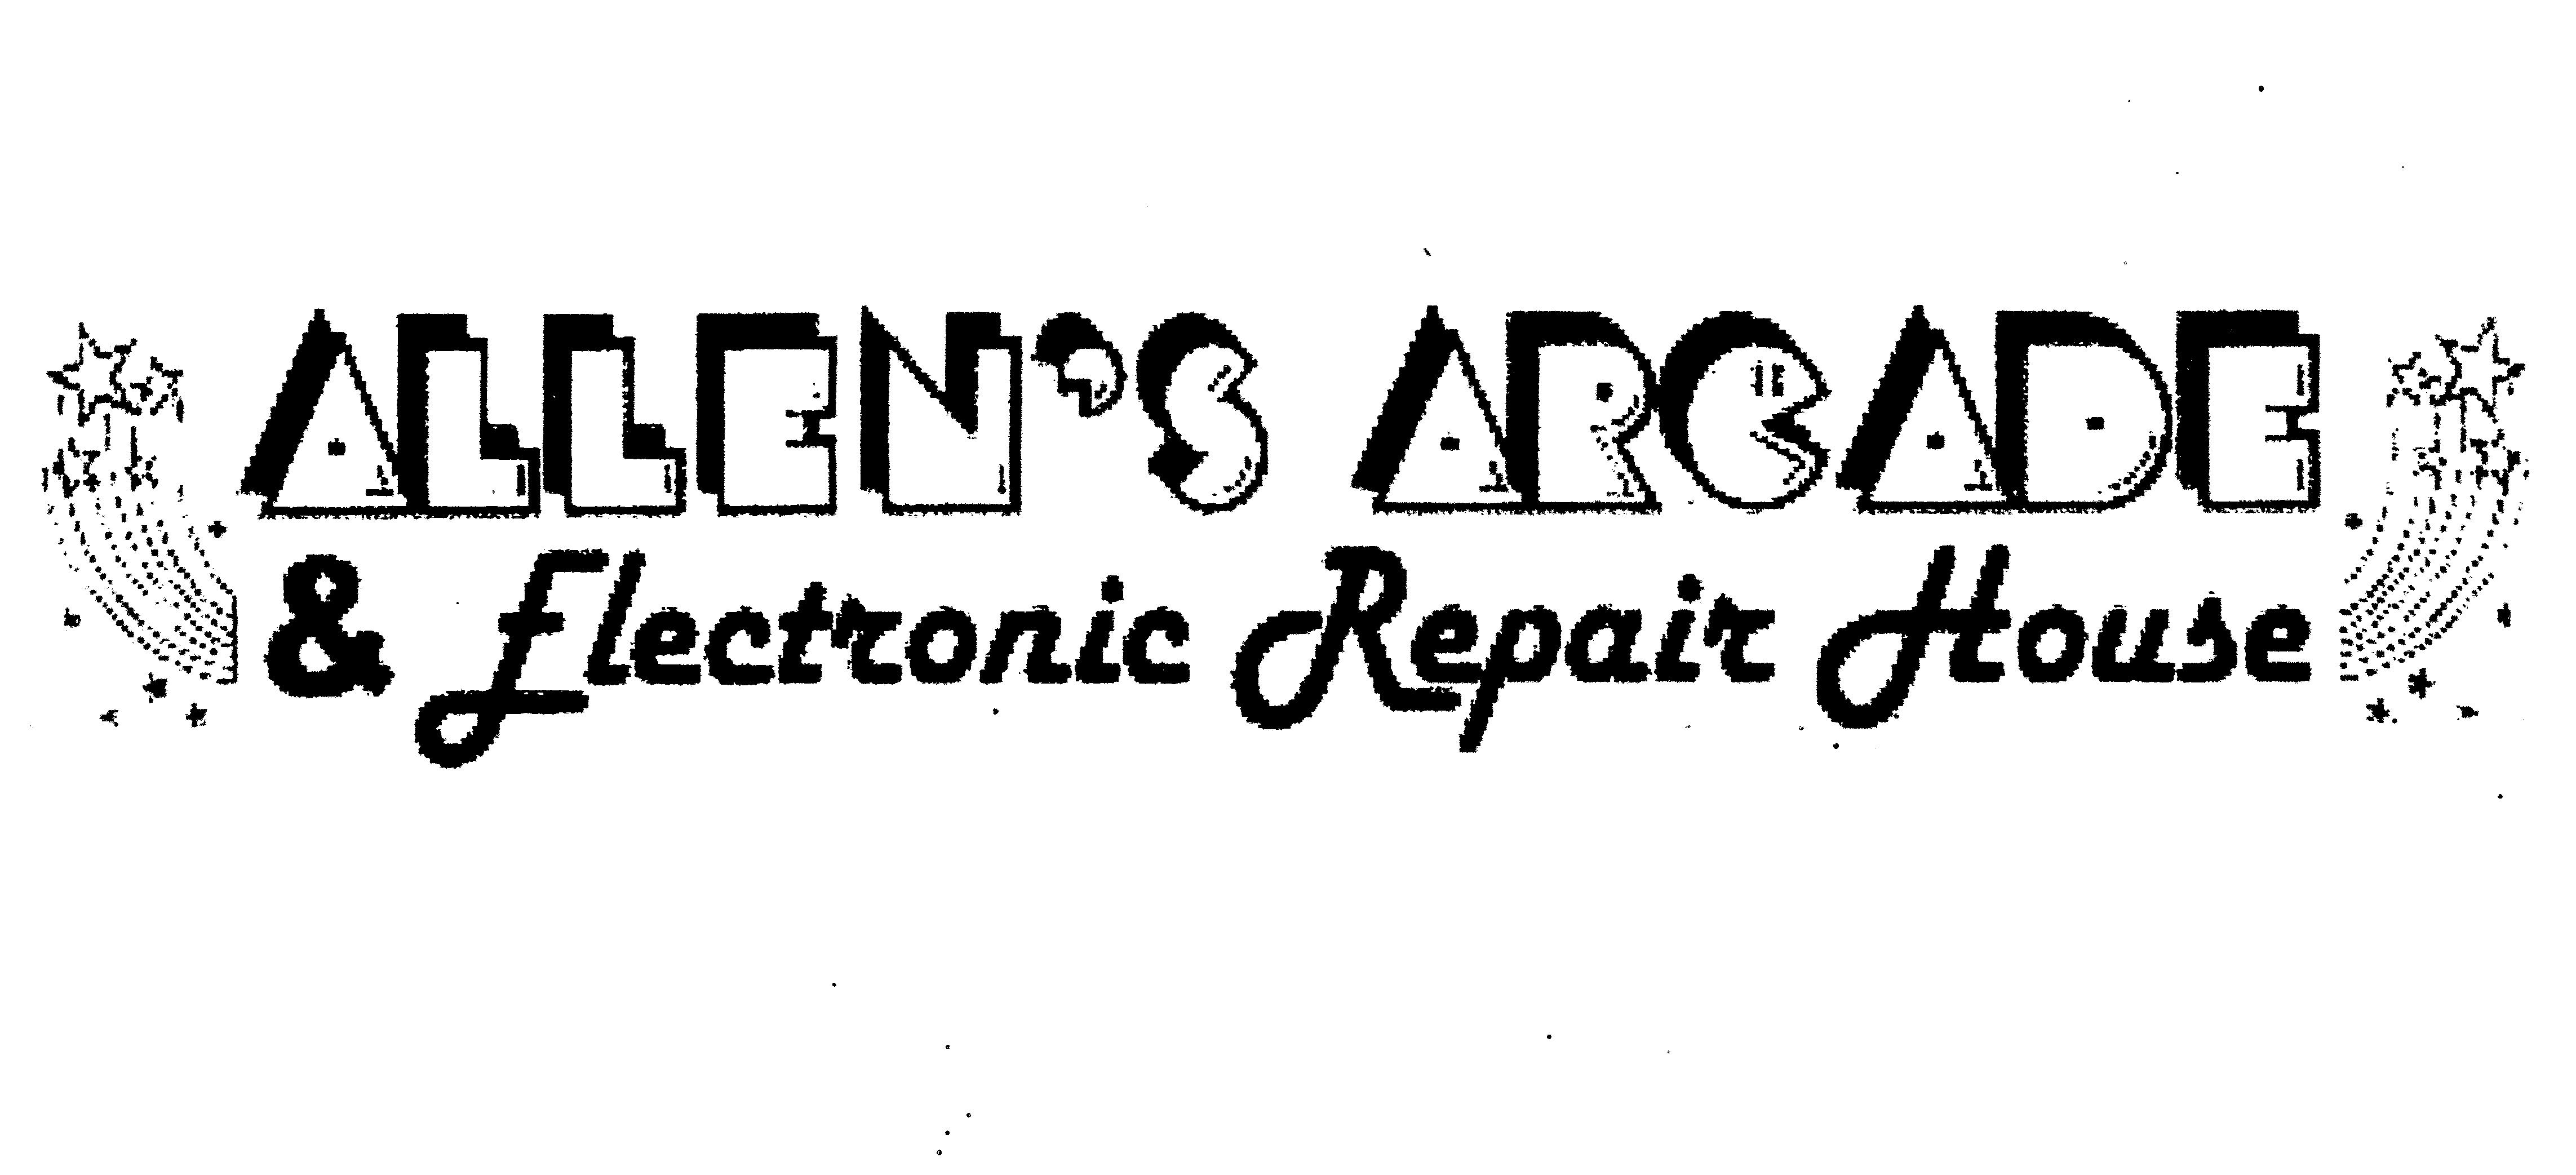 Arcade game repair home and business